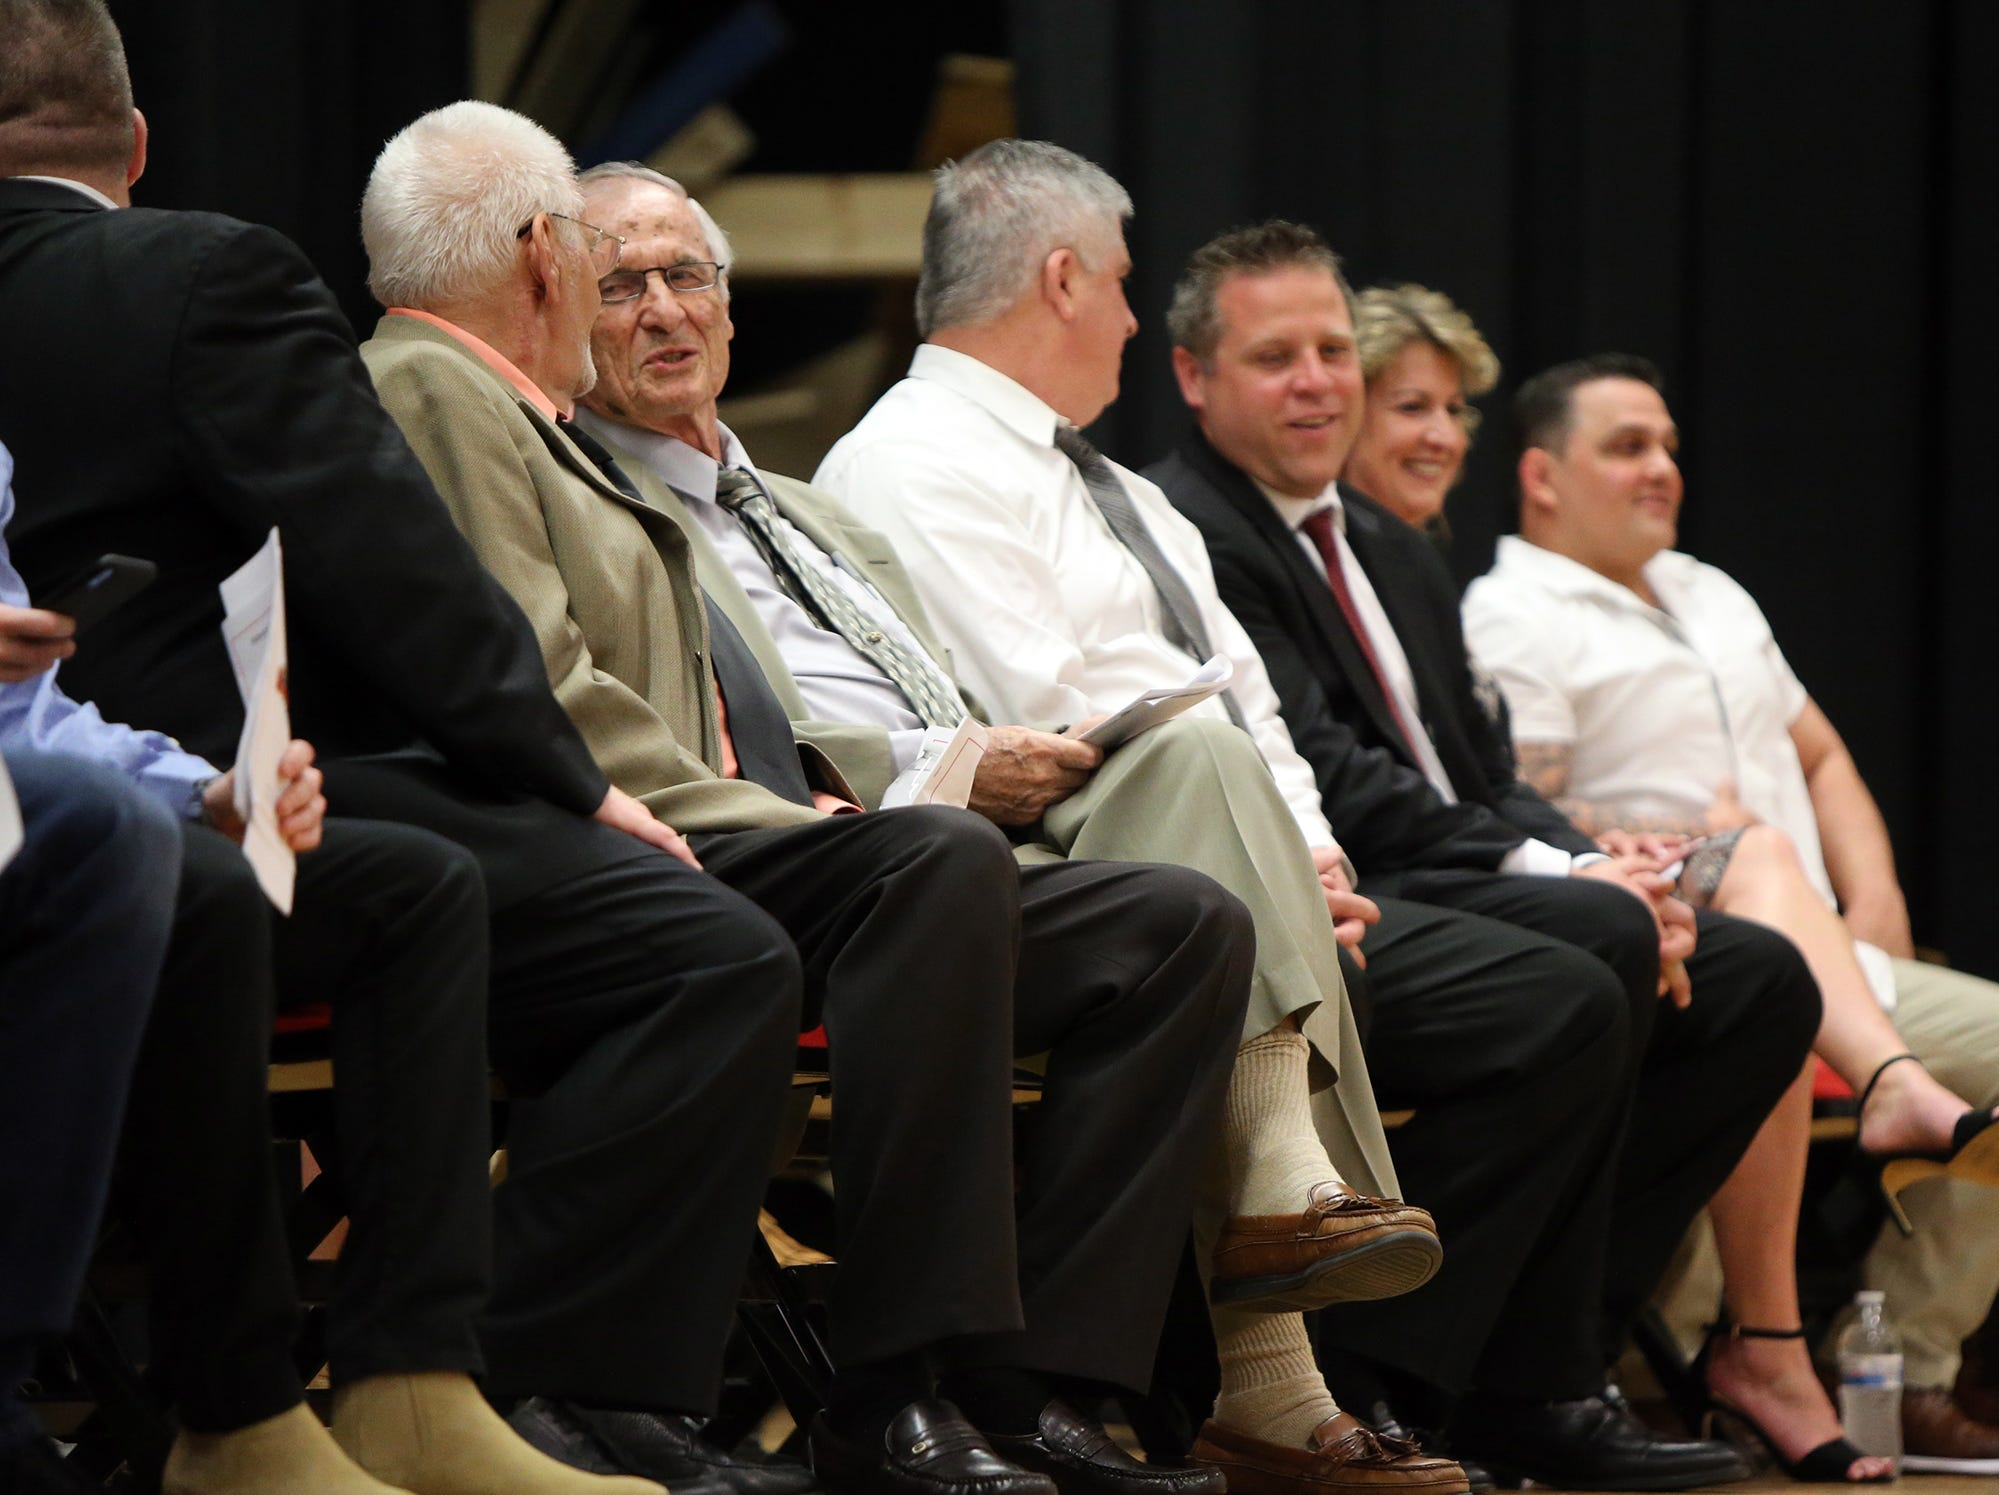 Edison High School Athletic Hall of Fame induction ceremony